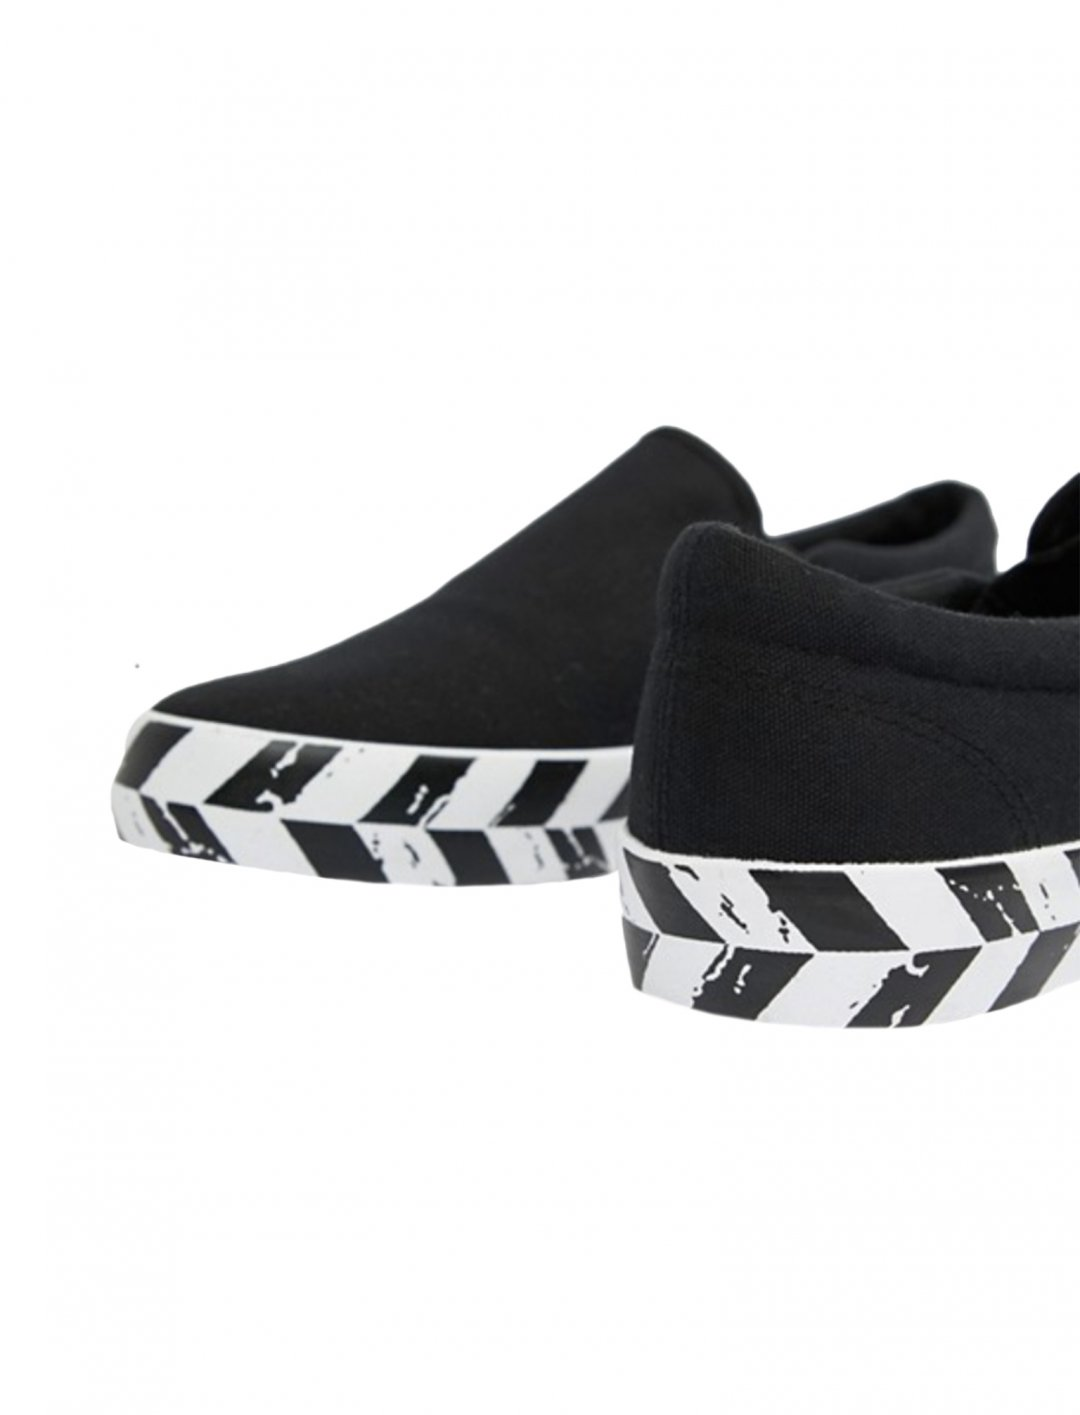 "Asos Slip On Plimsolls {""id"":12,""product_section_id"":1,""name"":""Shoes"",""order"":12} Asos"